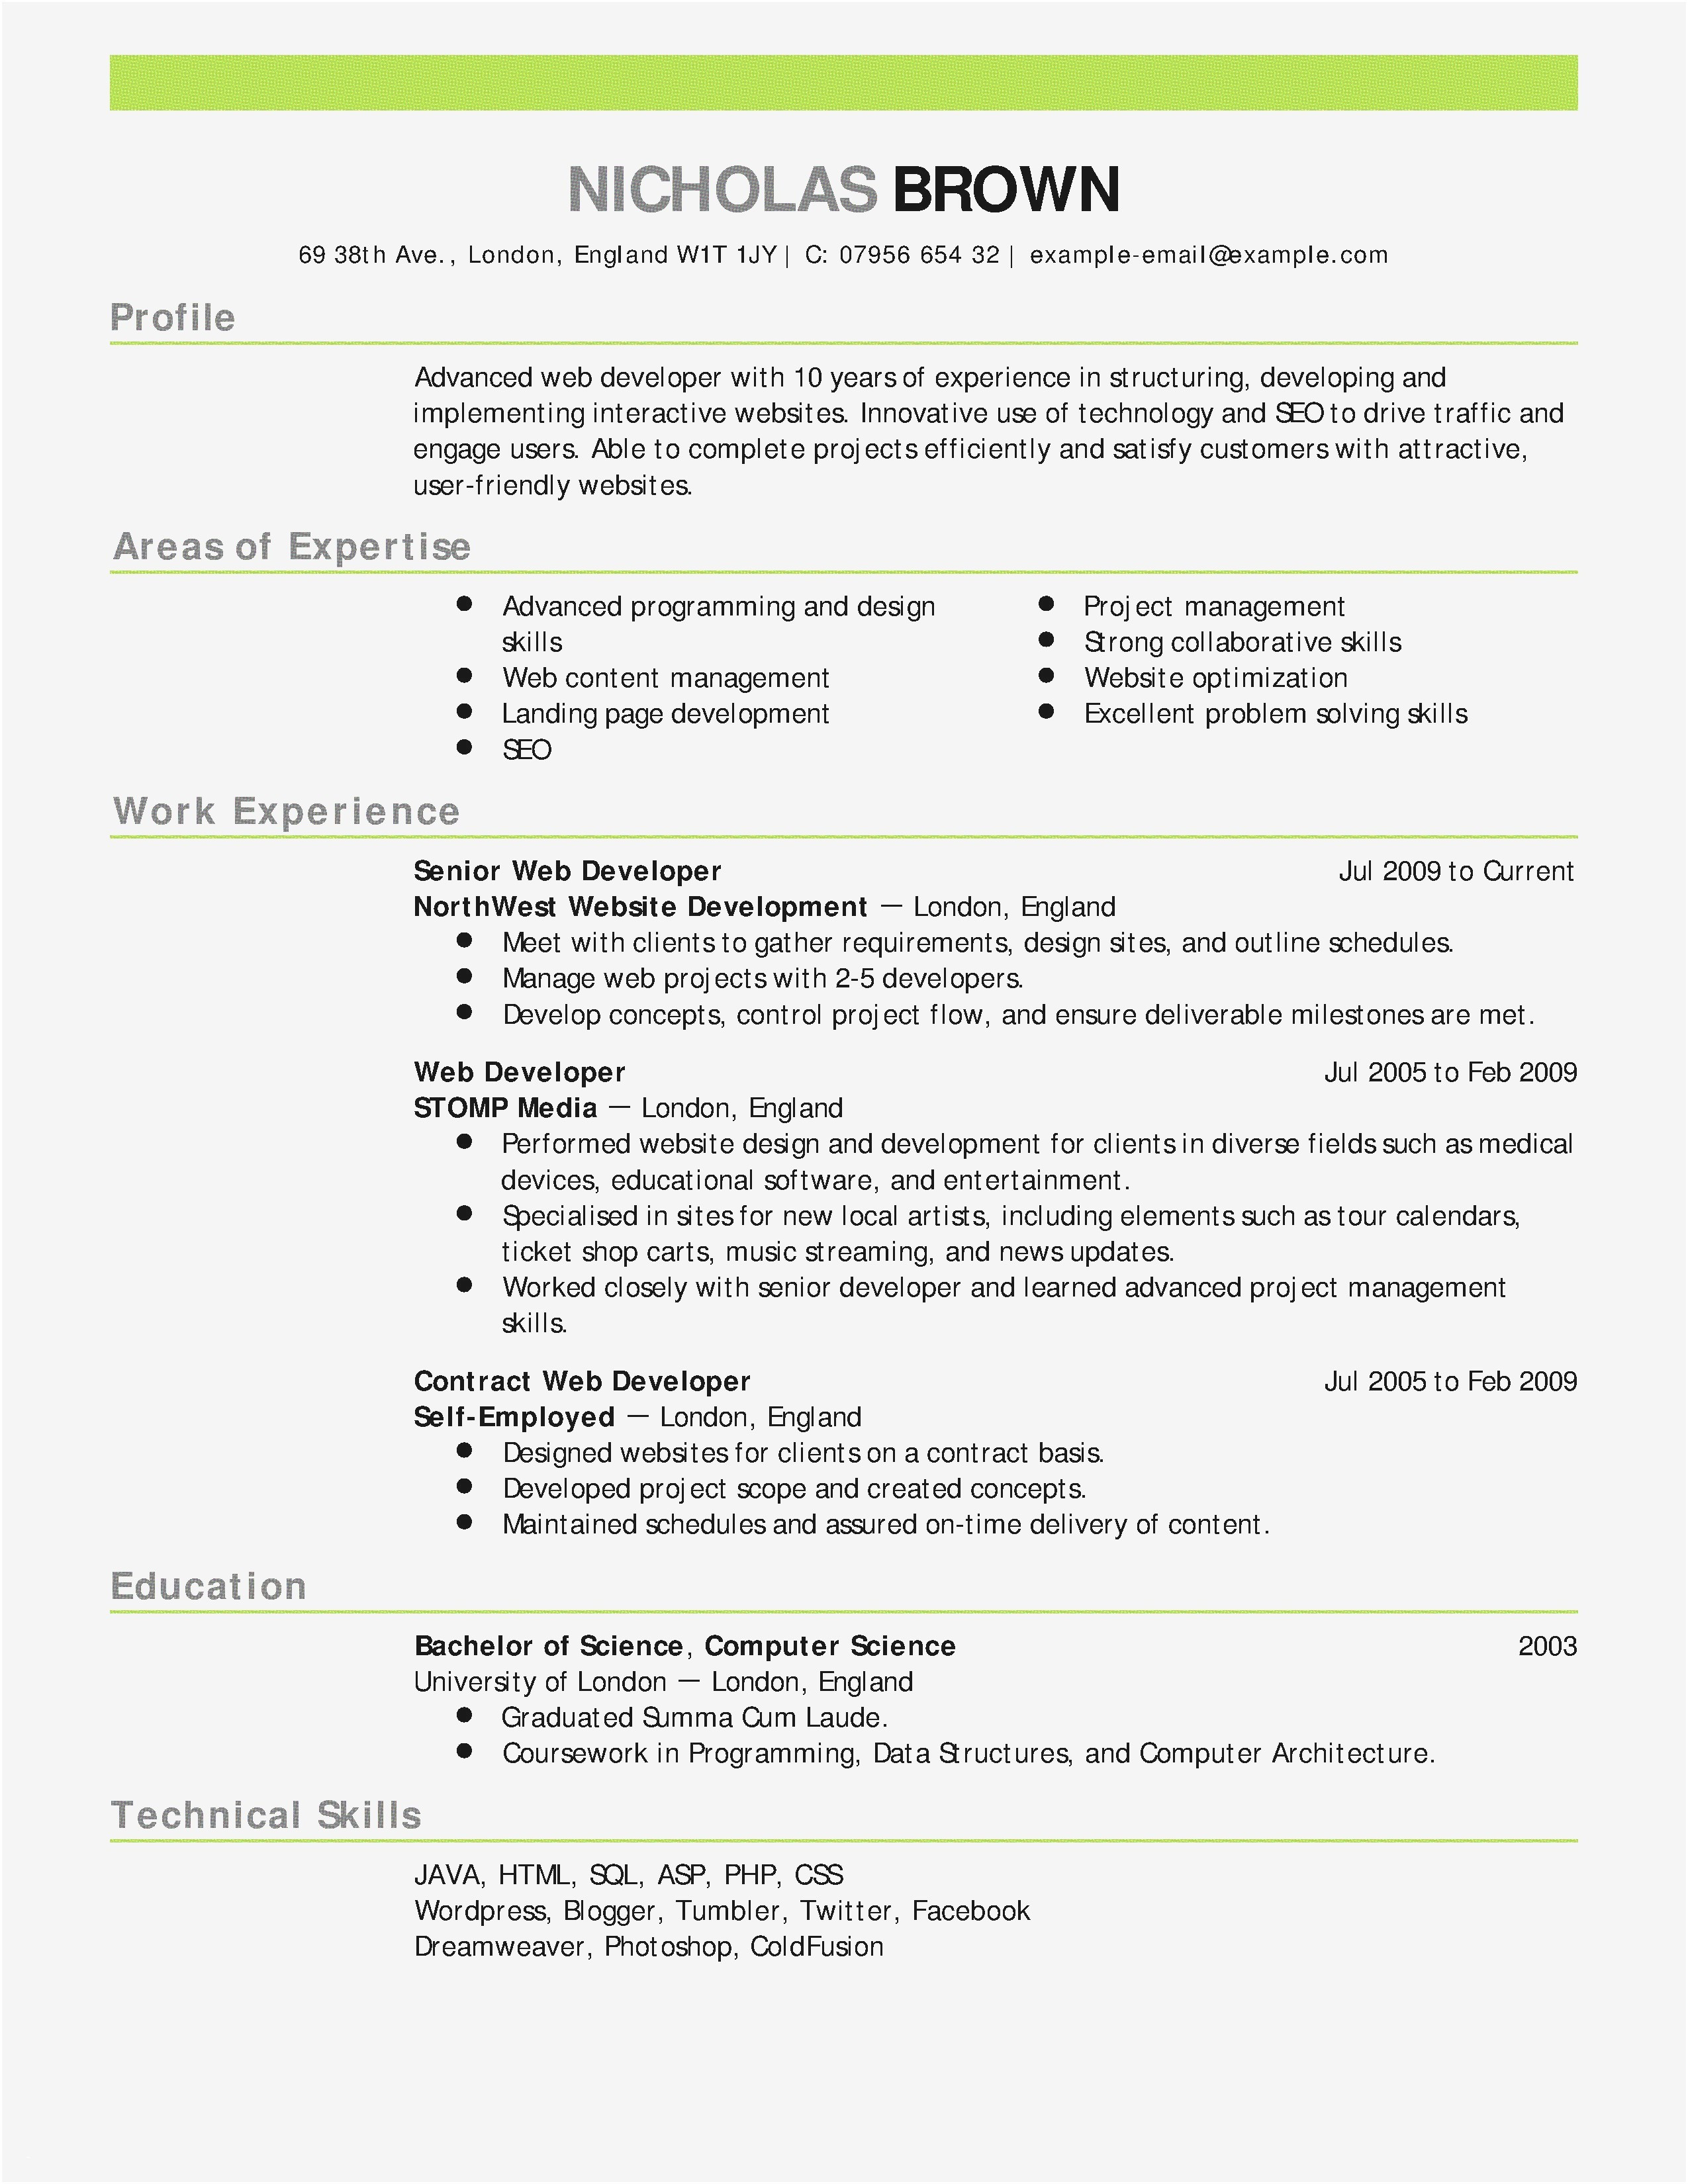 Word Doc Resume Template - 50 Free Invoice Template Word